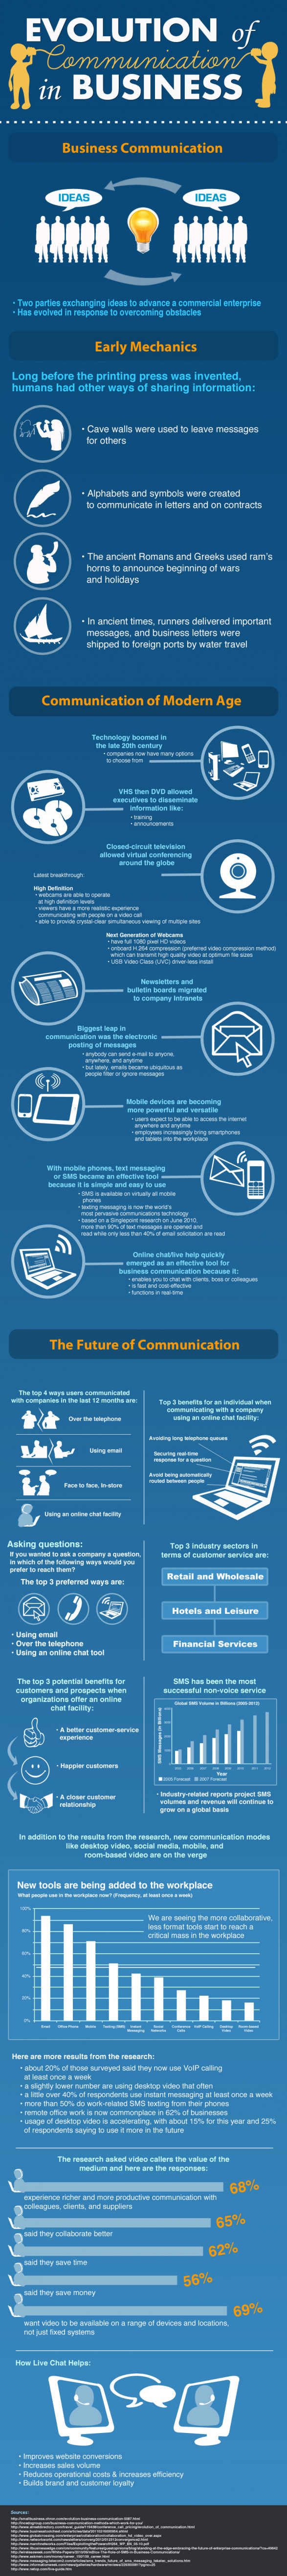 The Evolution of Communication in Business